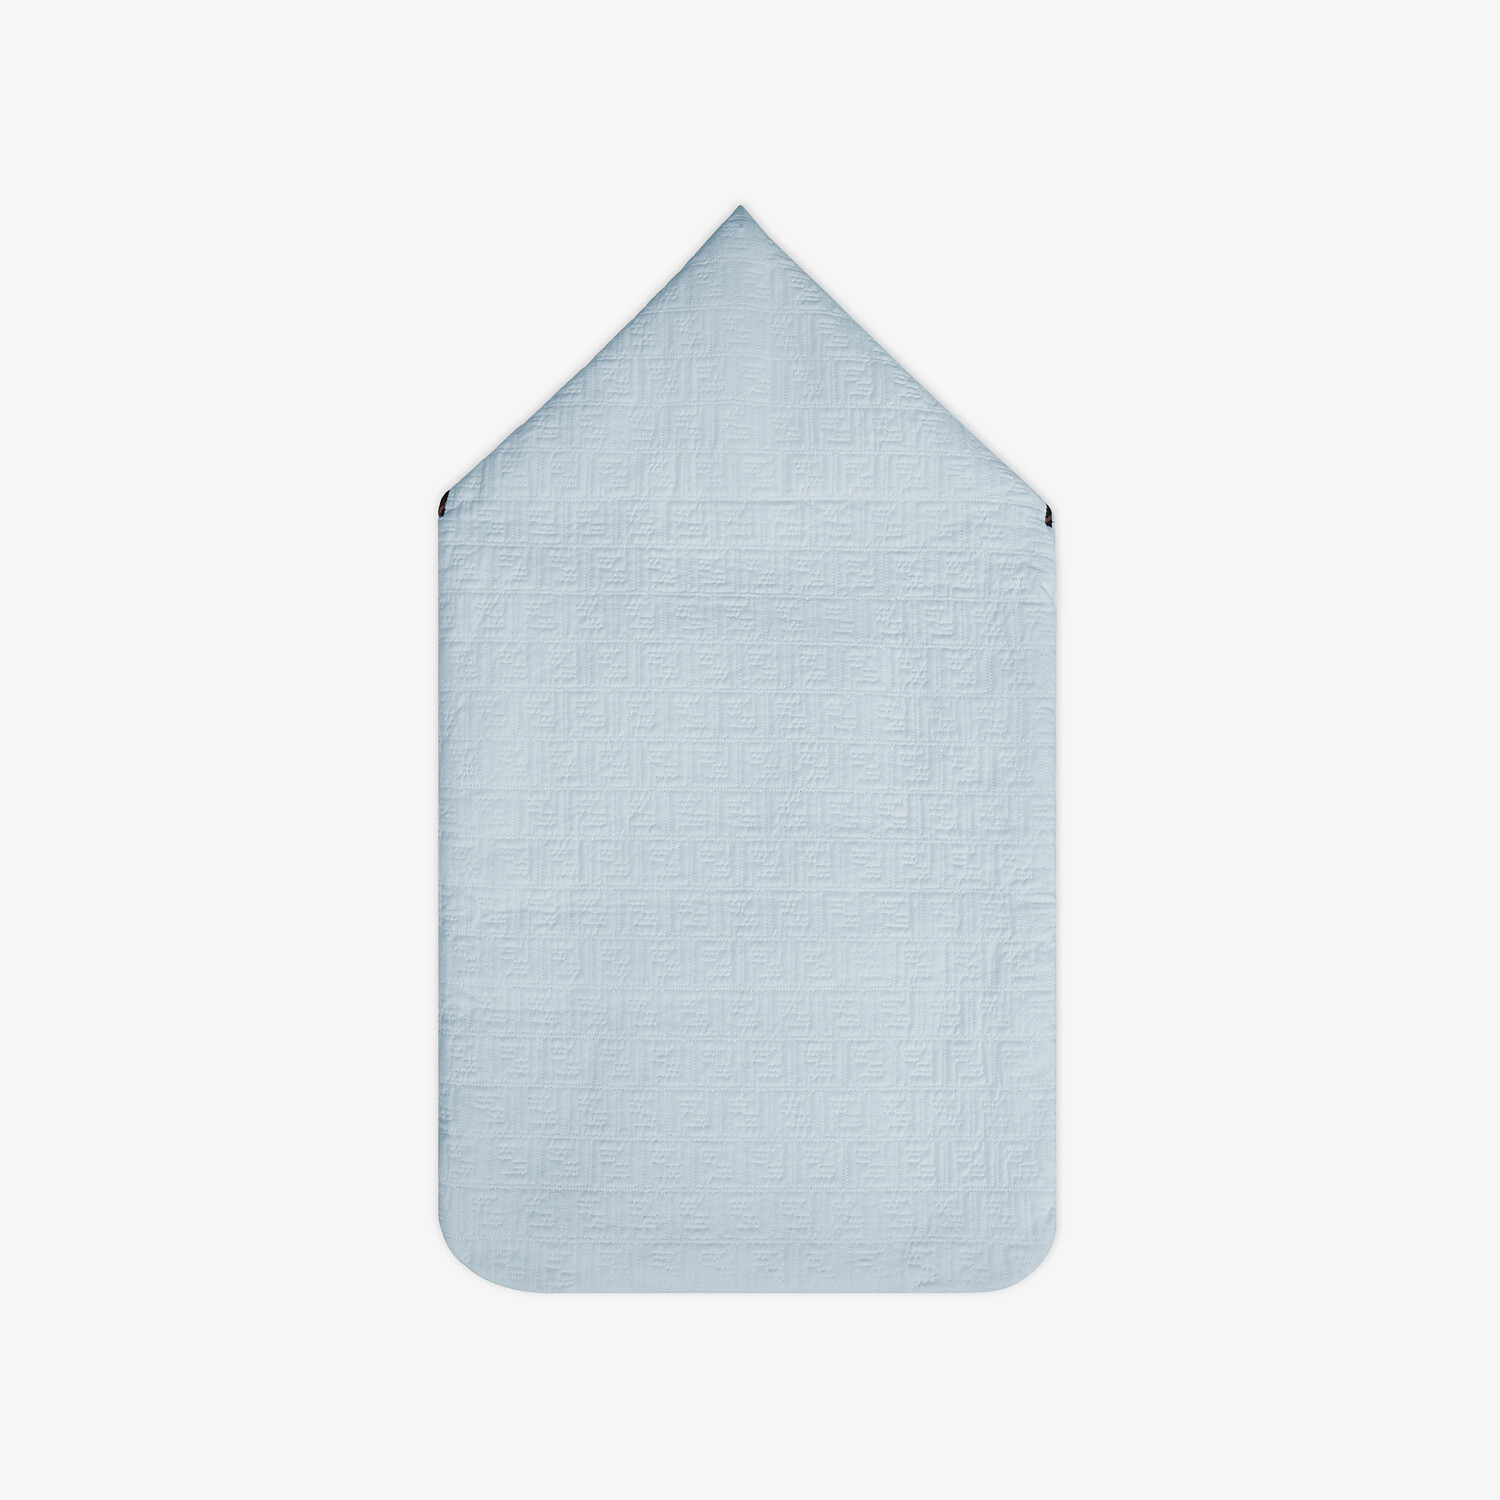 FENDI BABY SLEEPING BAG - Quilted cotton baby sleeping bag - view 2 detail